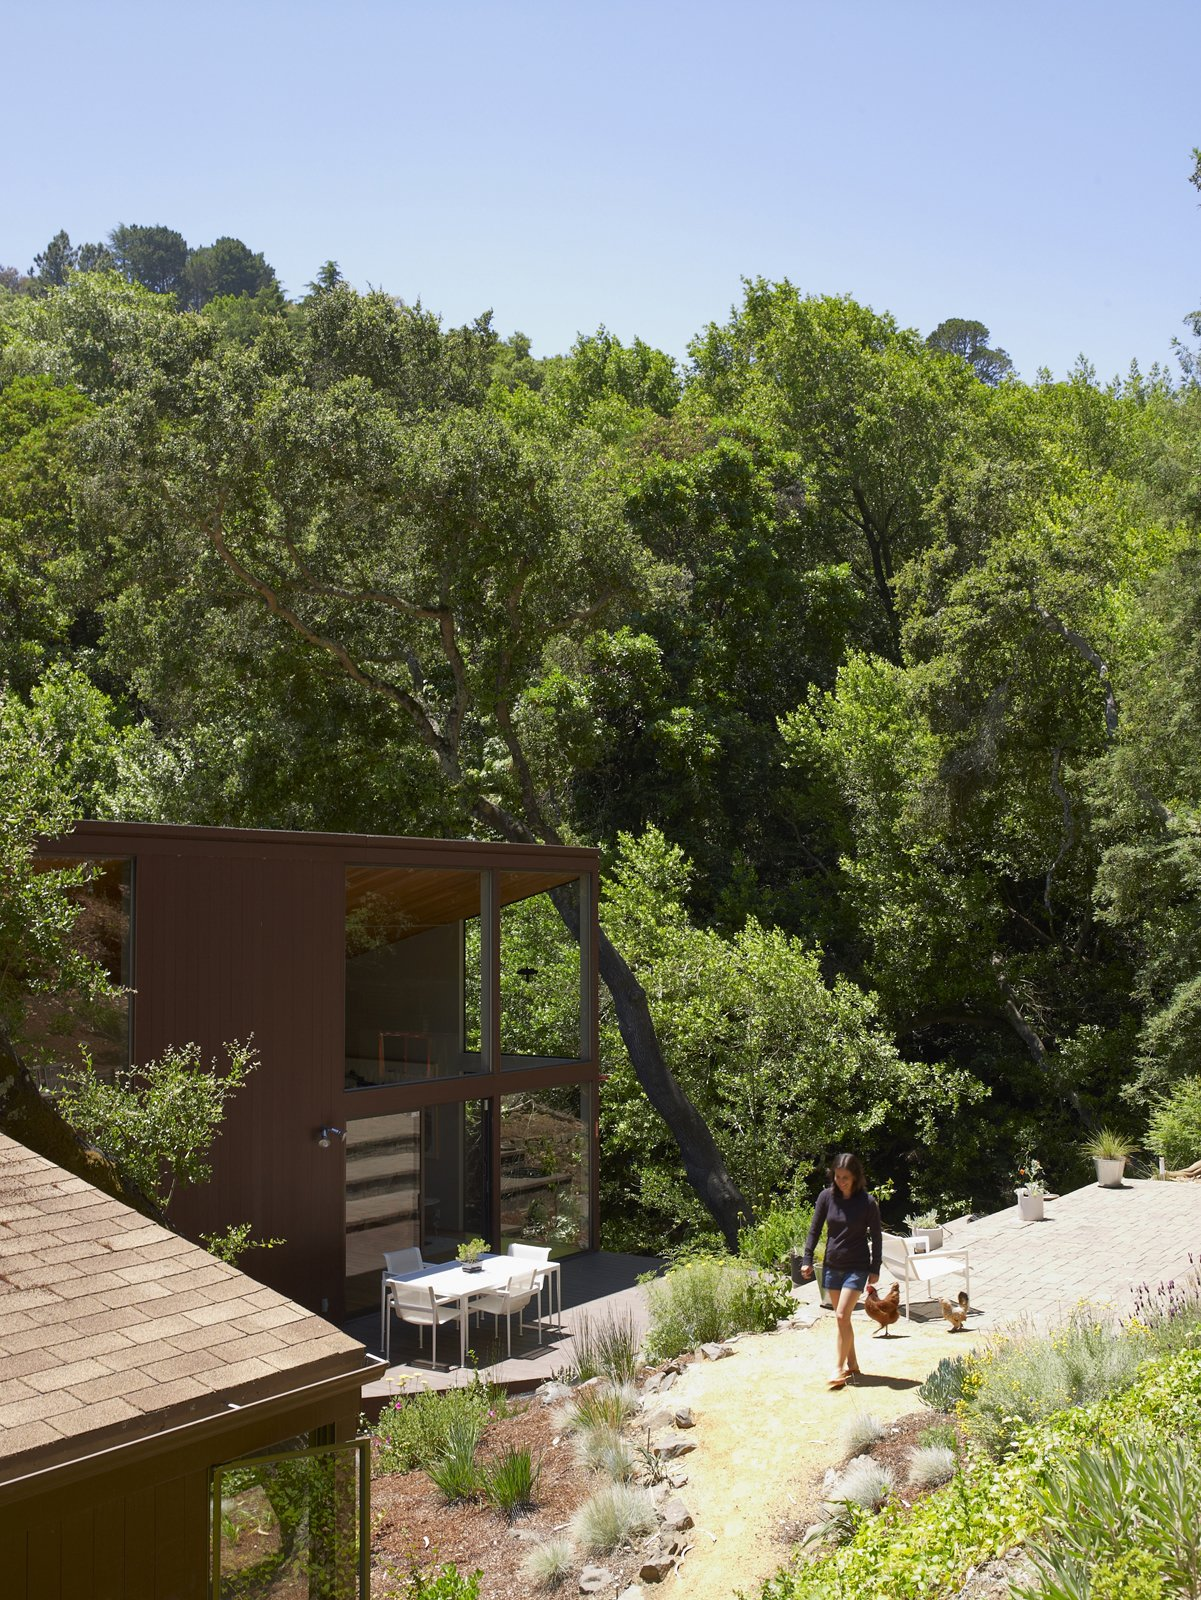 Exterior and House Building Type There's little concern about privacy considering the canopy of trees that surrounds the house. Alexander, and the chickens, take advantage of their sunny Northern Californian clime.  Outdoor from Undivided Intentions